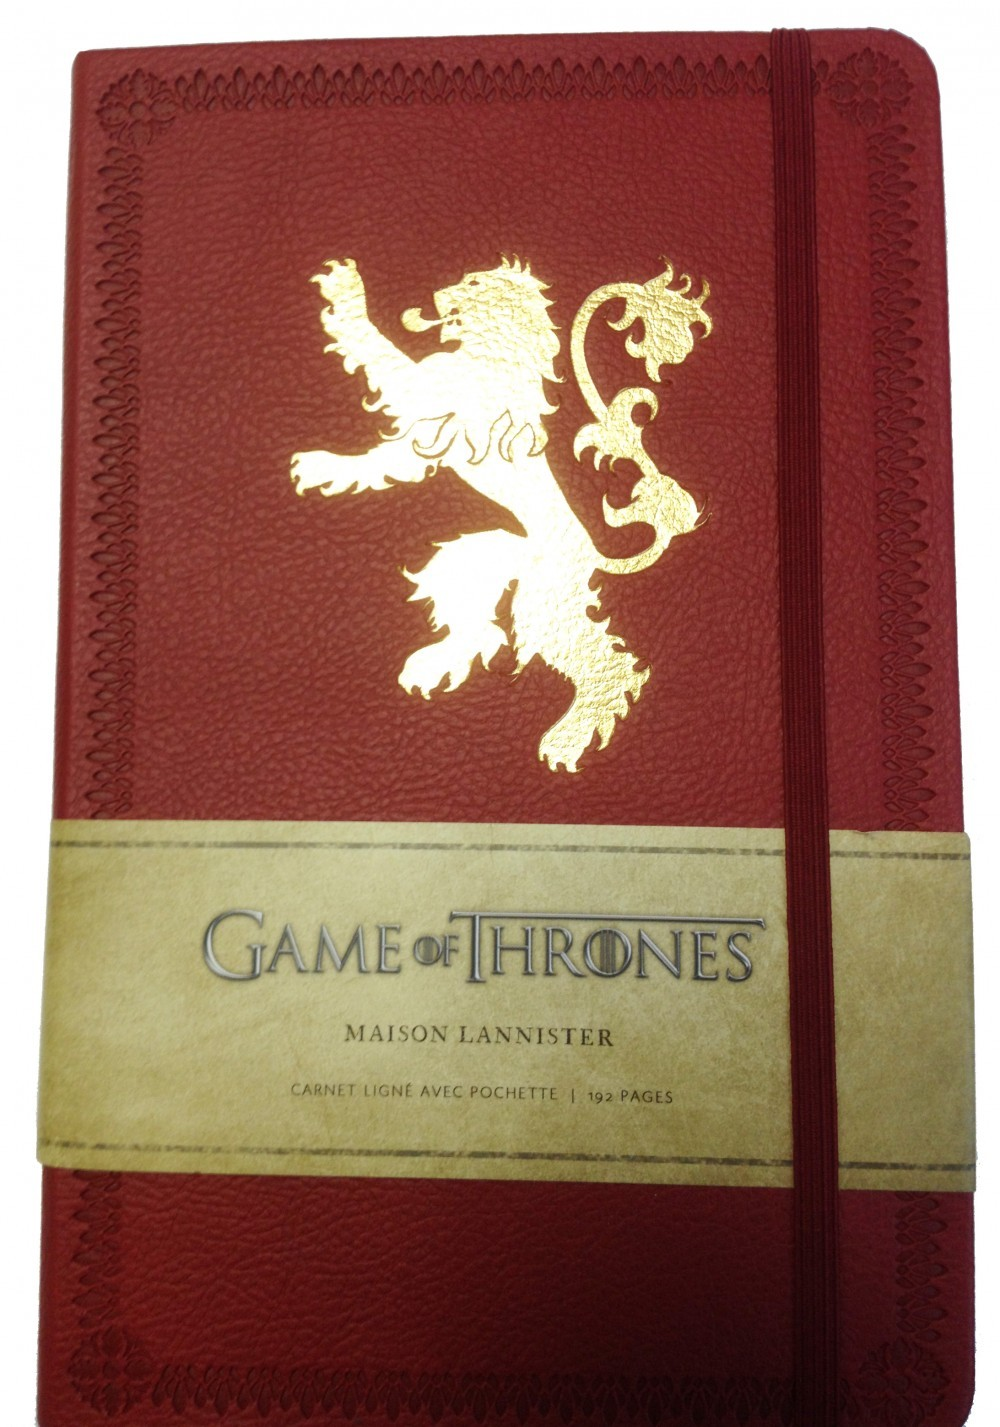 GAME OF THRONES : CARNET MAISON LANNISTER